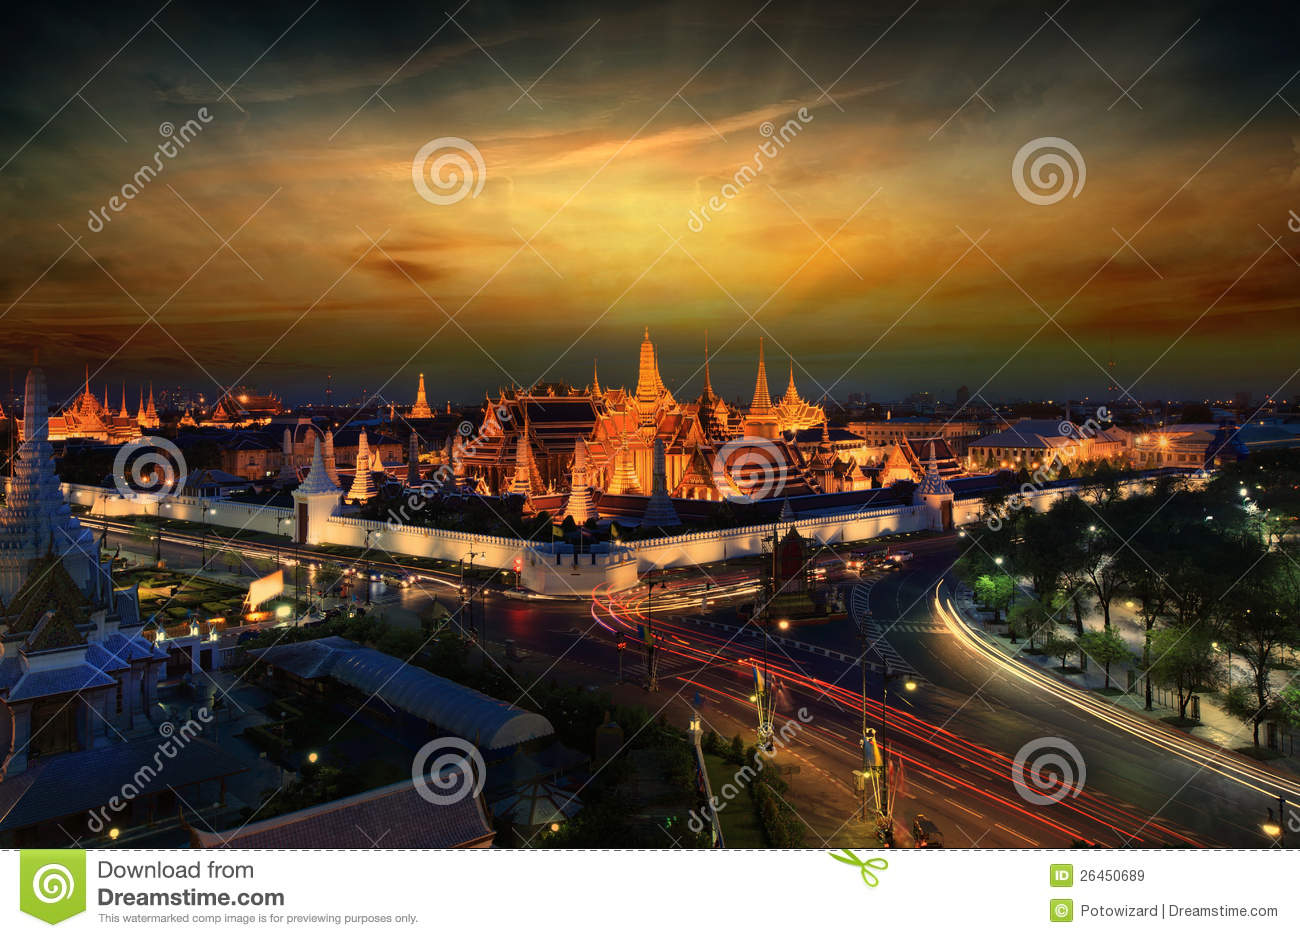 Wat Phra Kaew Royalty Free Stock Images - Image: 26450689